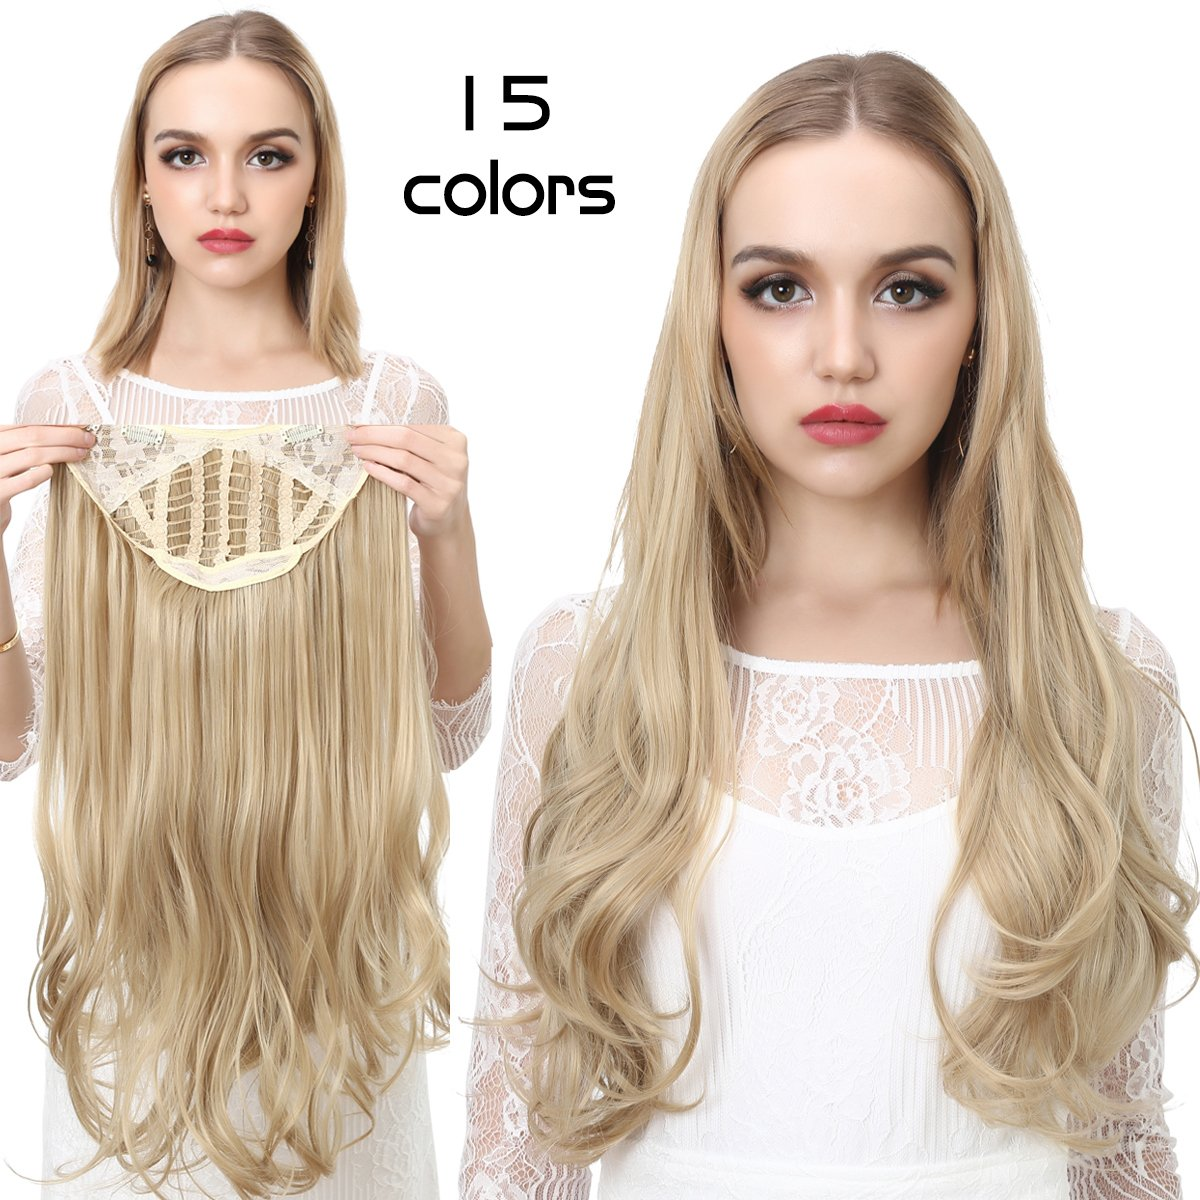 Blonde Clip in Hair Extensions Curly Curl Wave Full Head Long 24'' 0.37lb 170g One Piece U part Synthetic Hairpiece For Women Natural Real Hair Piece Japan High Temperature Fiber(UH17#16H613)